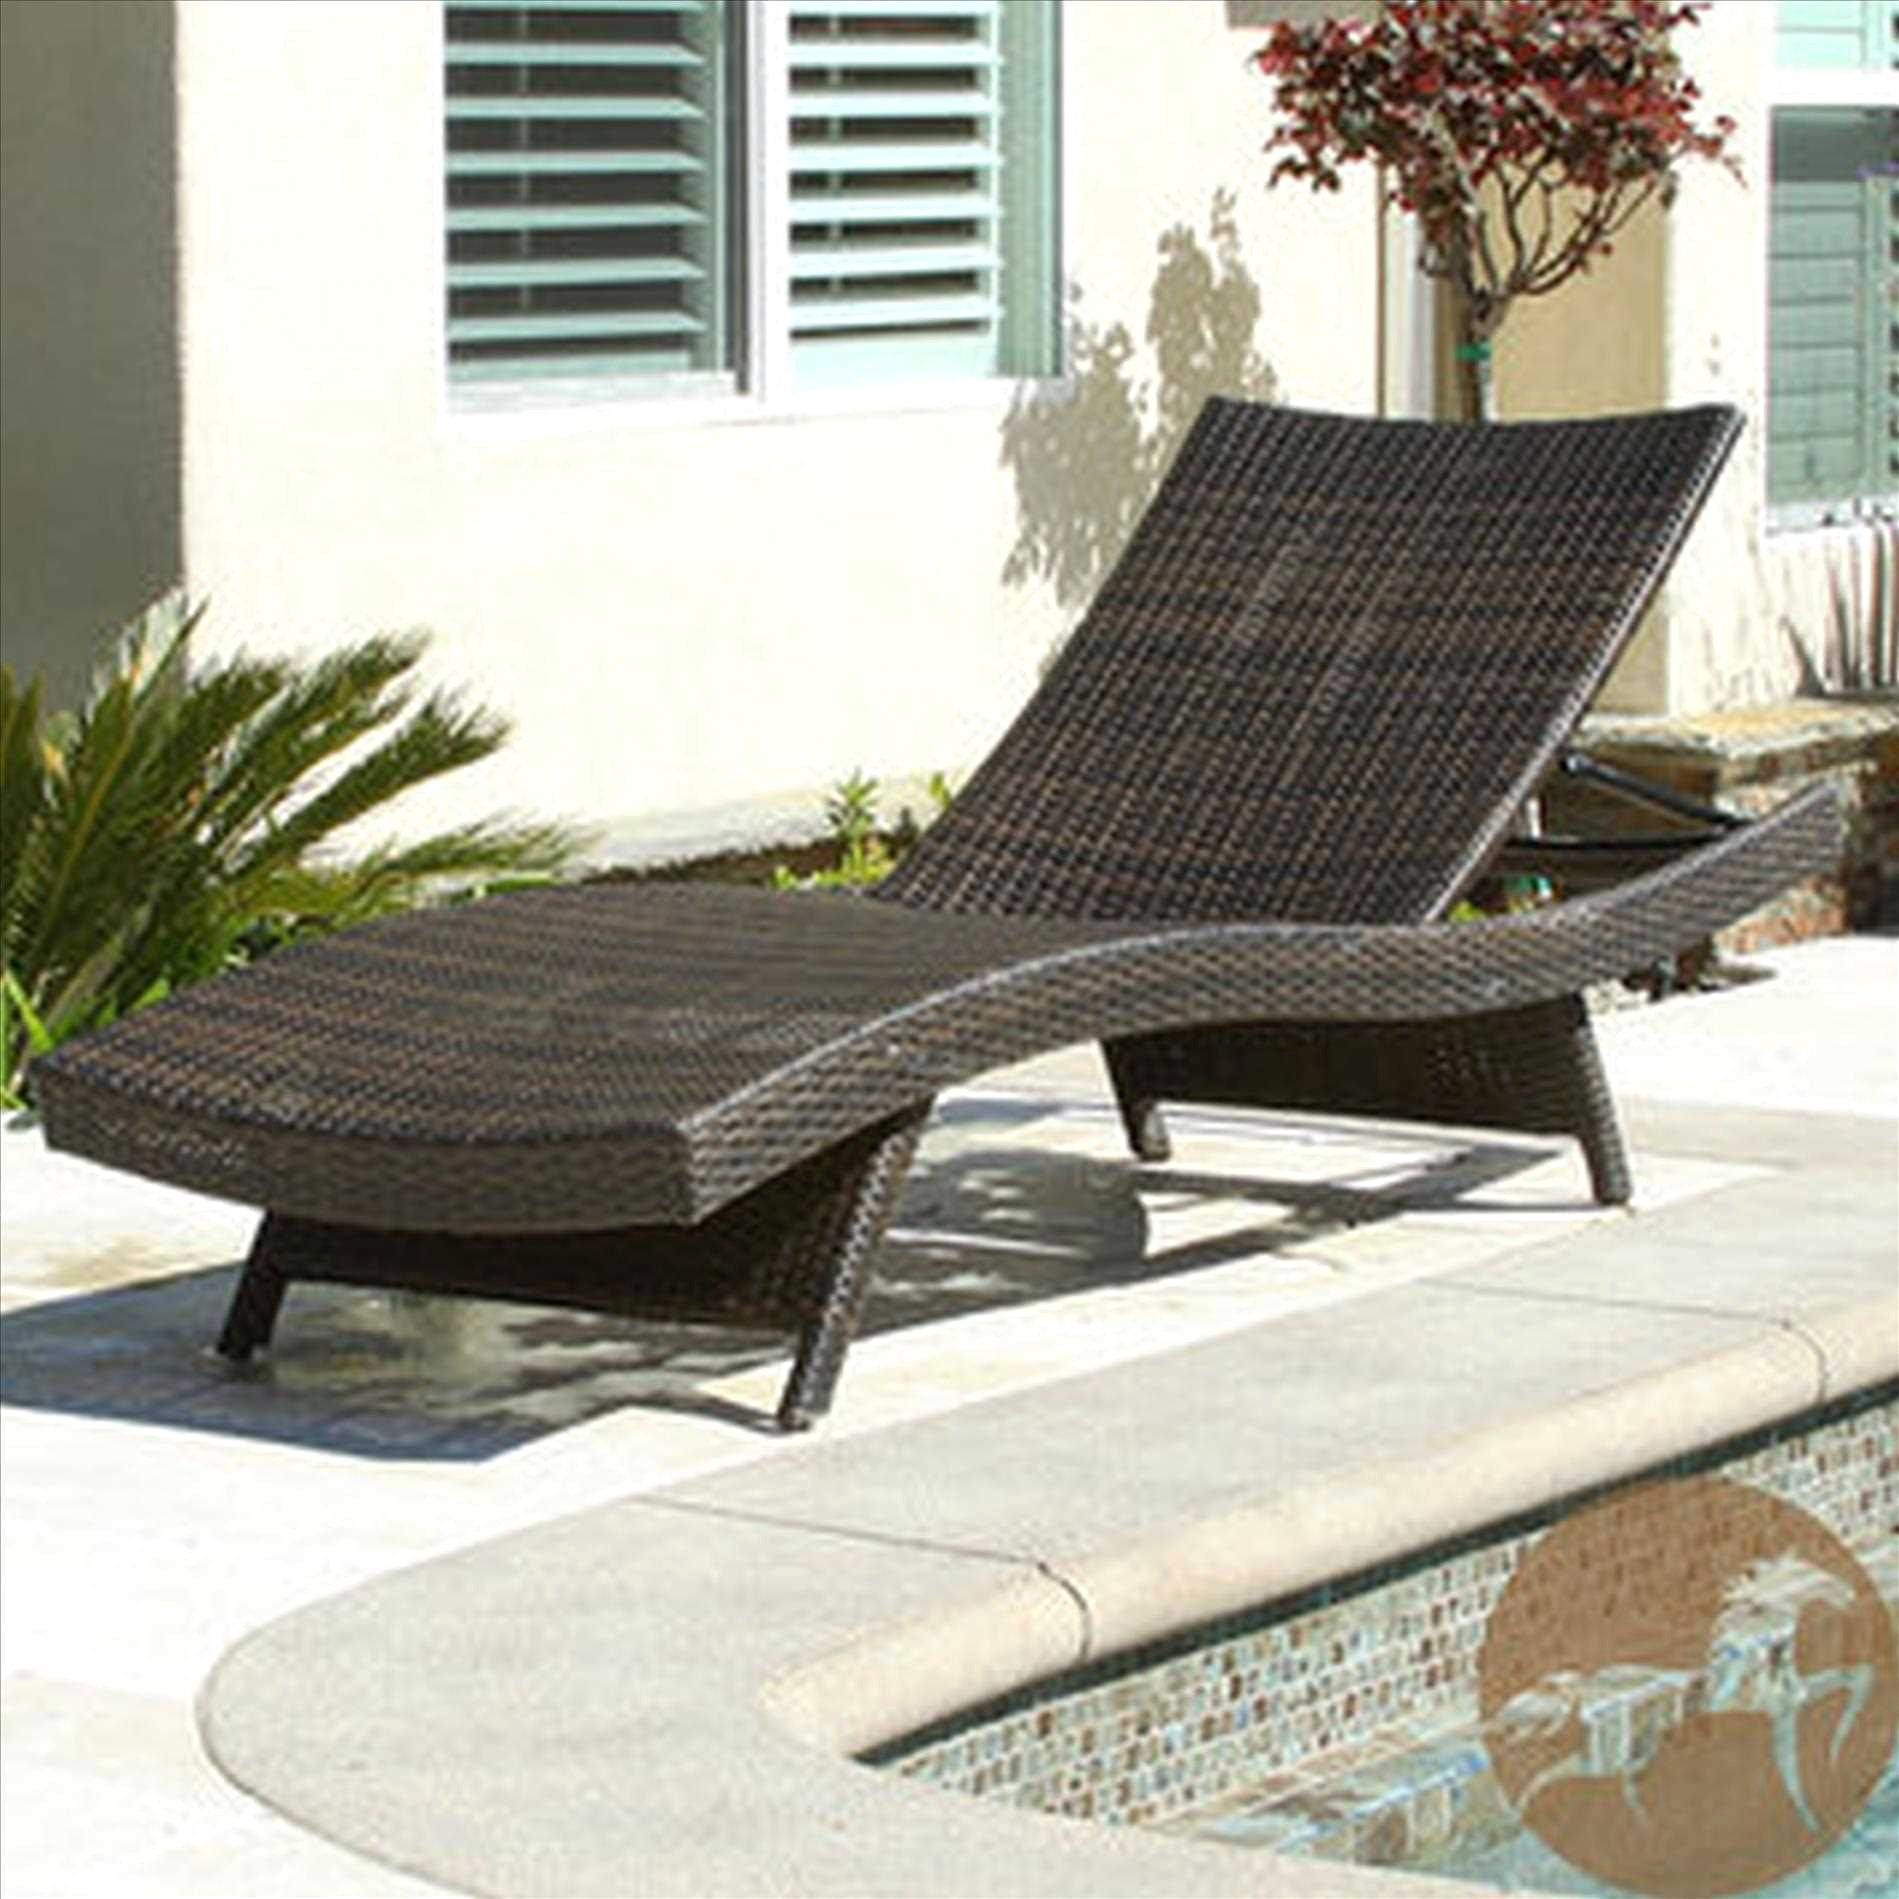 Captivating Sears Chaise Lounge Chairs Patio Furniture